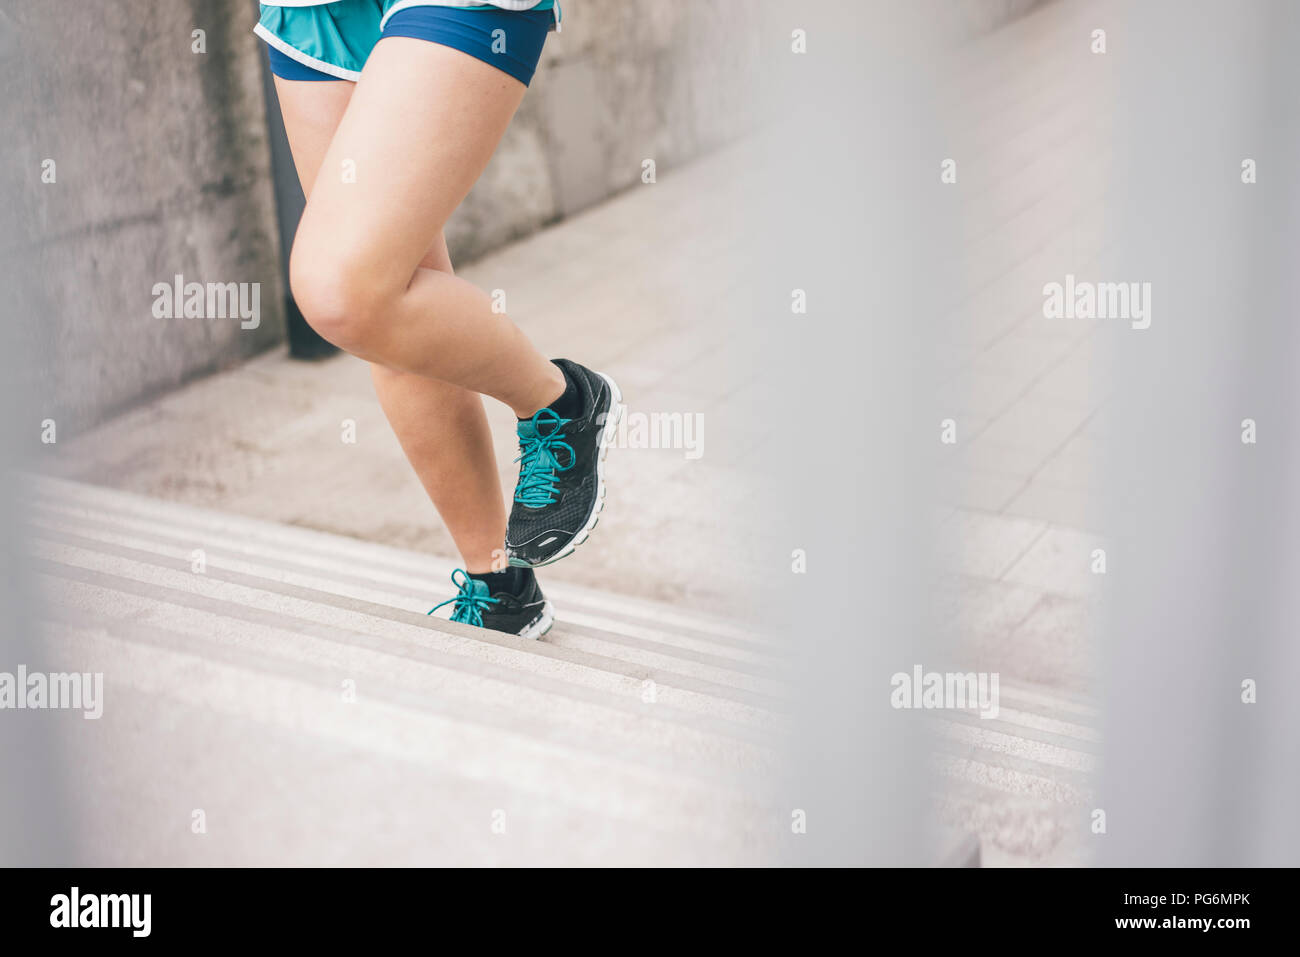 Close-up of woman running upstairs - Stock Image